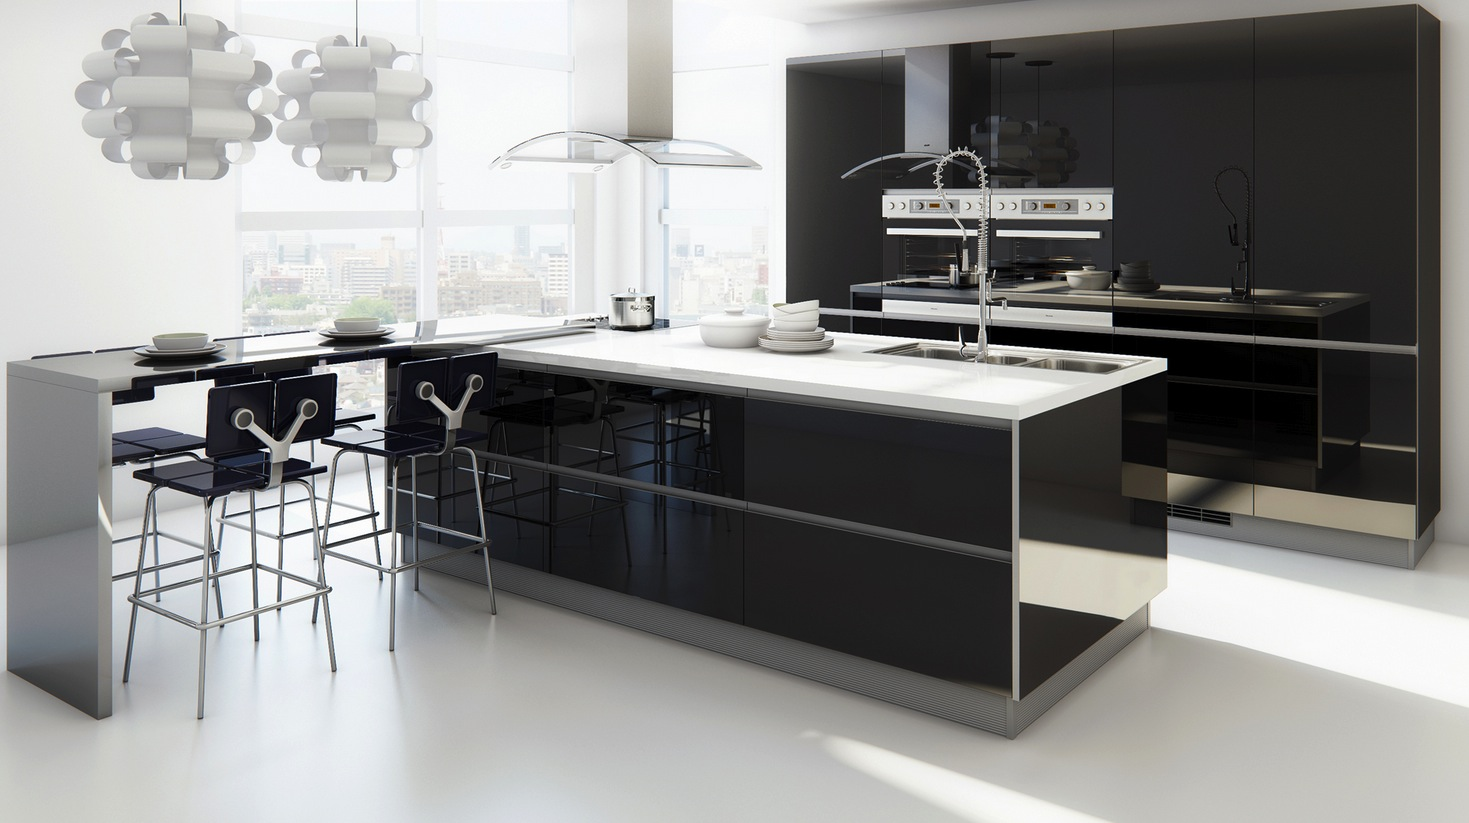 12 modern eat in kitchen designs. Black Bedroom Furniture Sets. Home Design Ideas